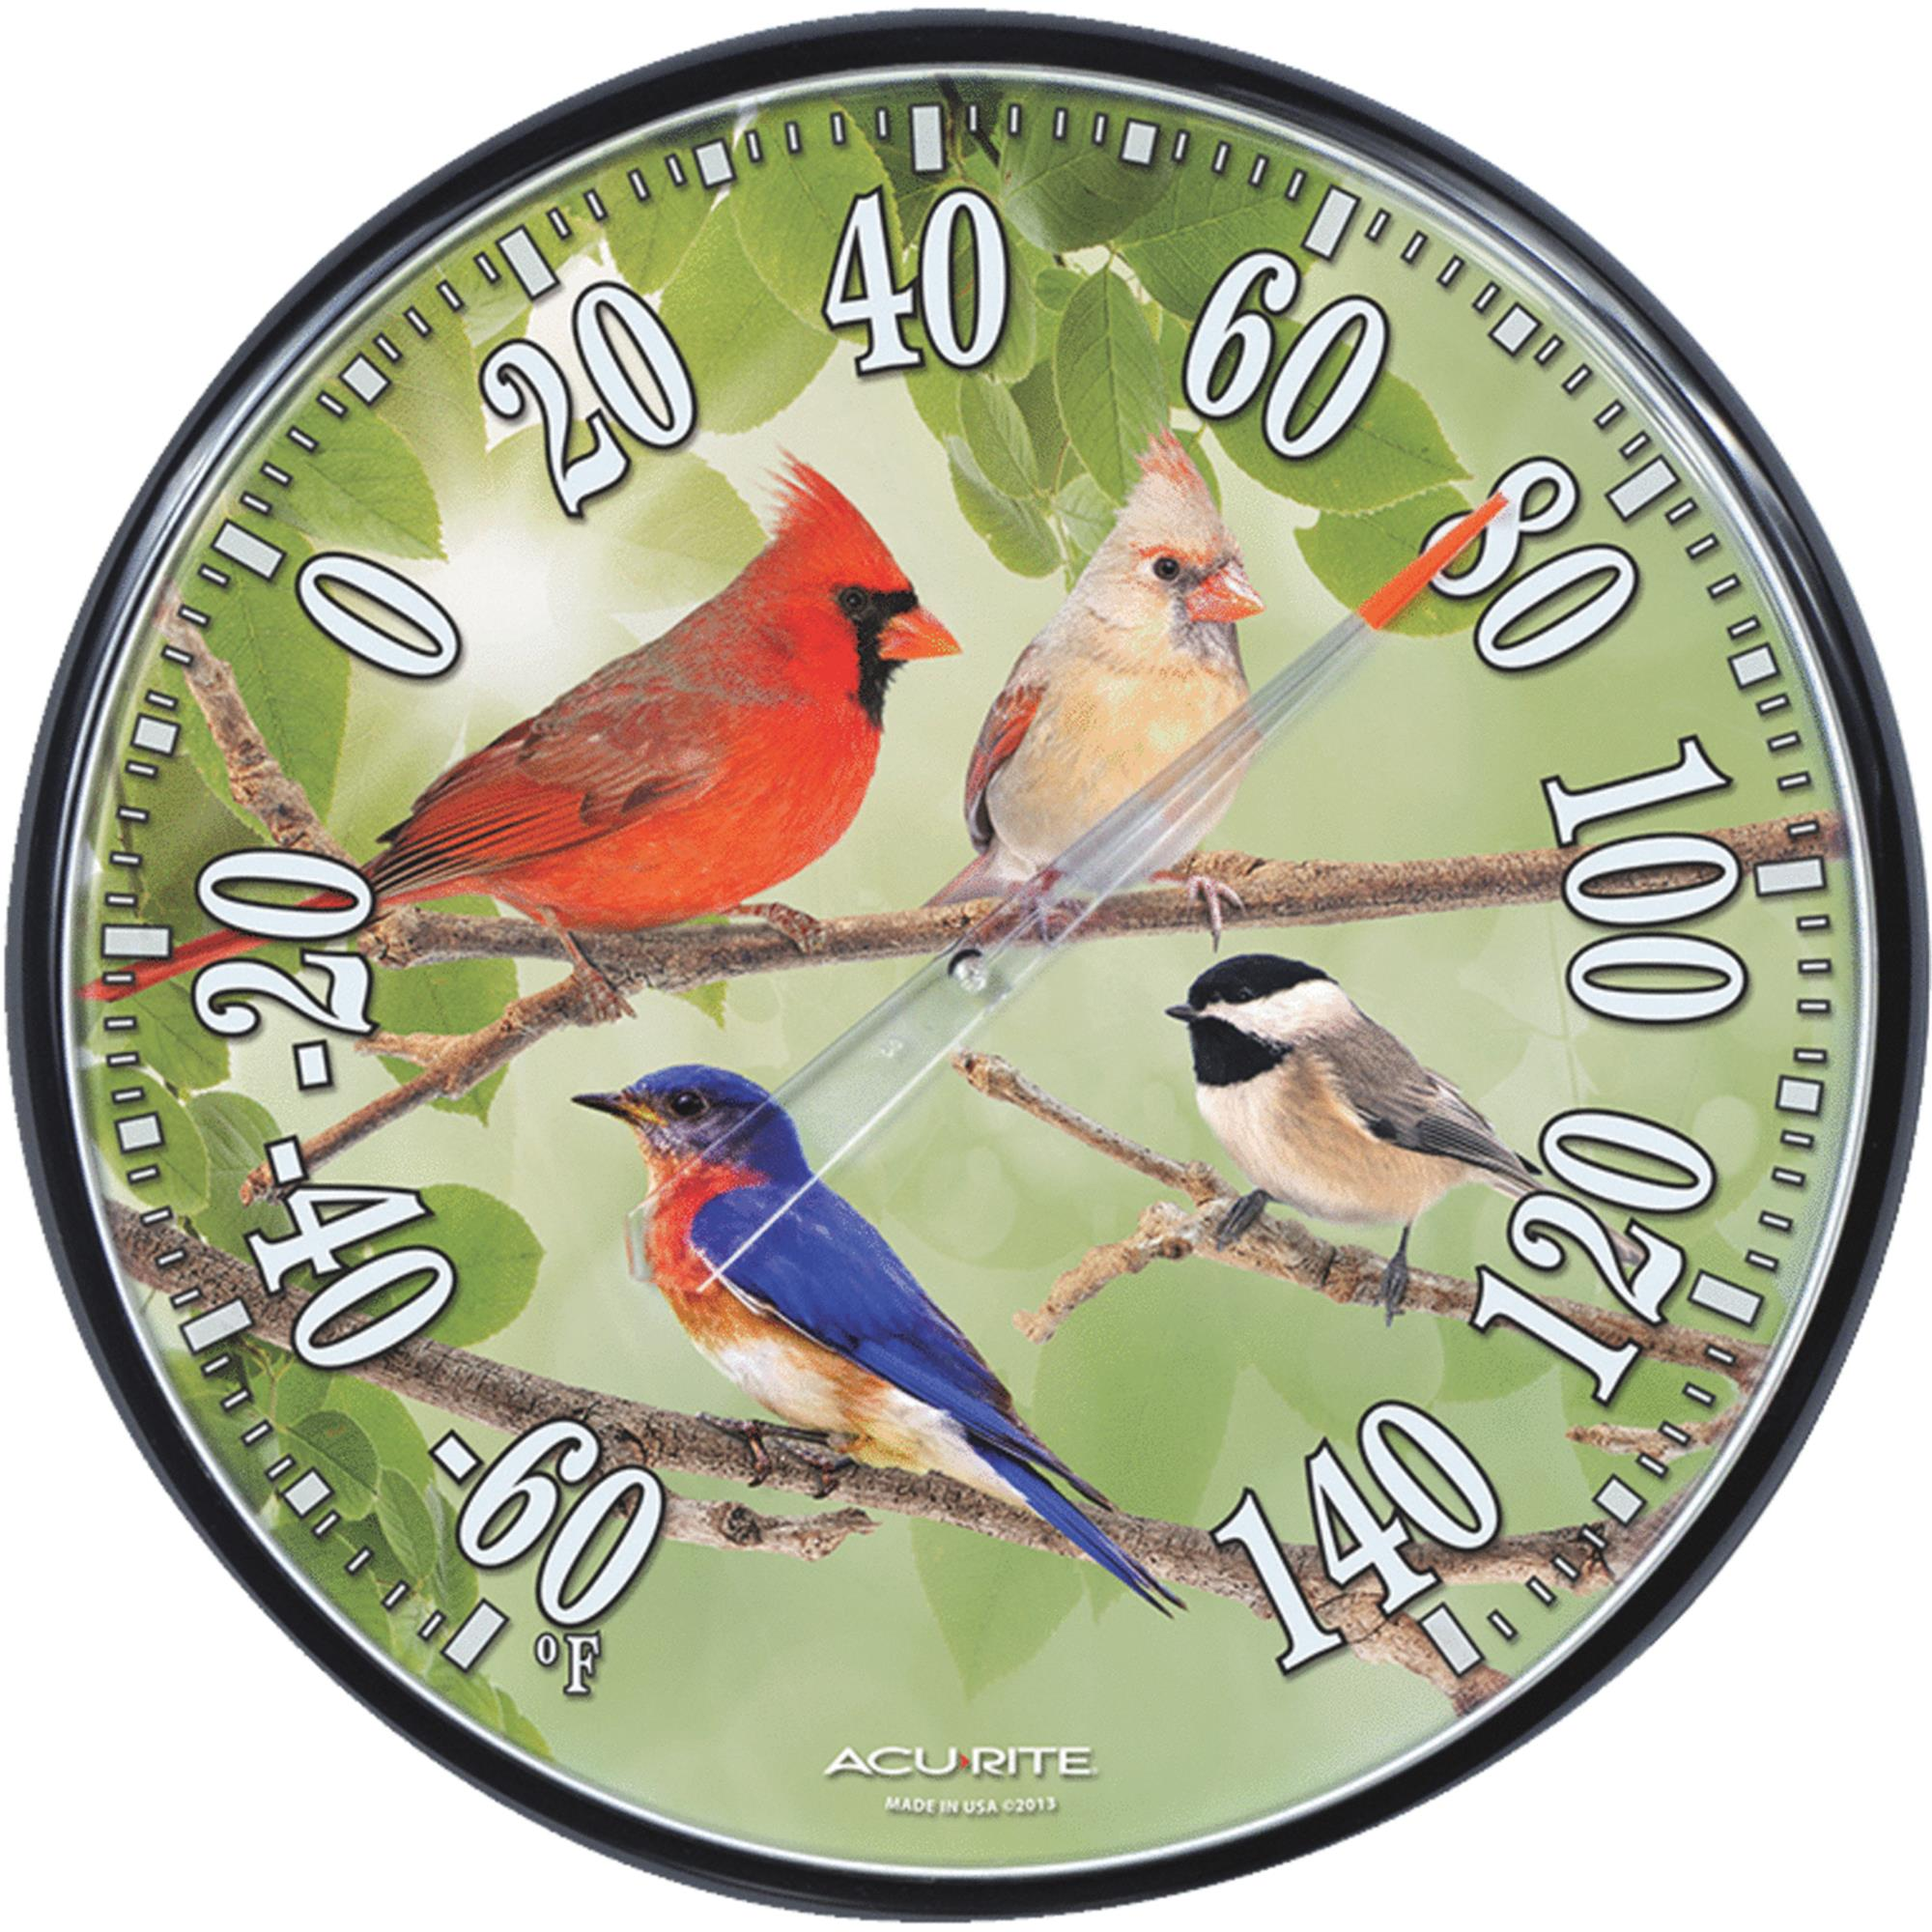 AcuRite Songbird Indoor And Outdoor Thermometer by Chaney Instrument Co